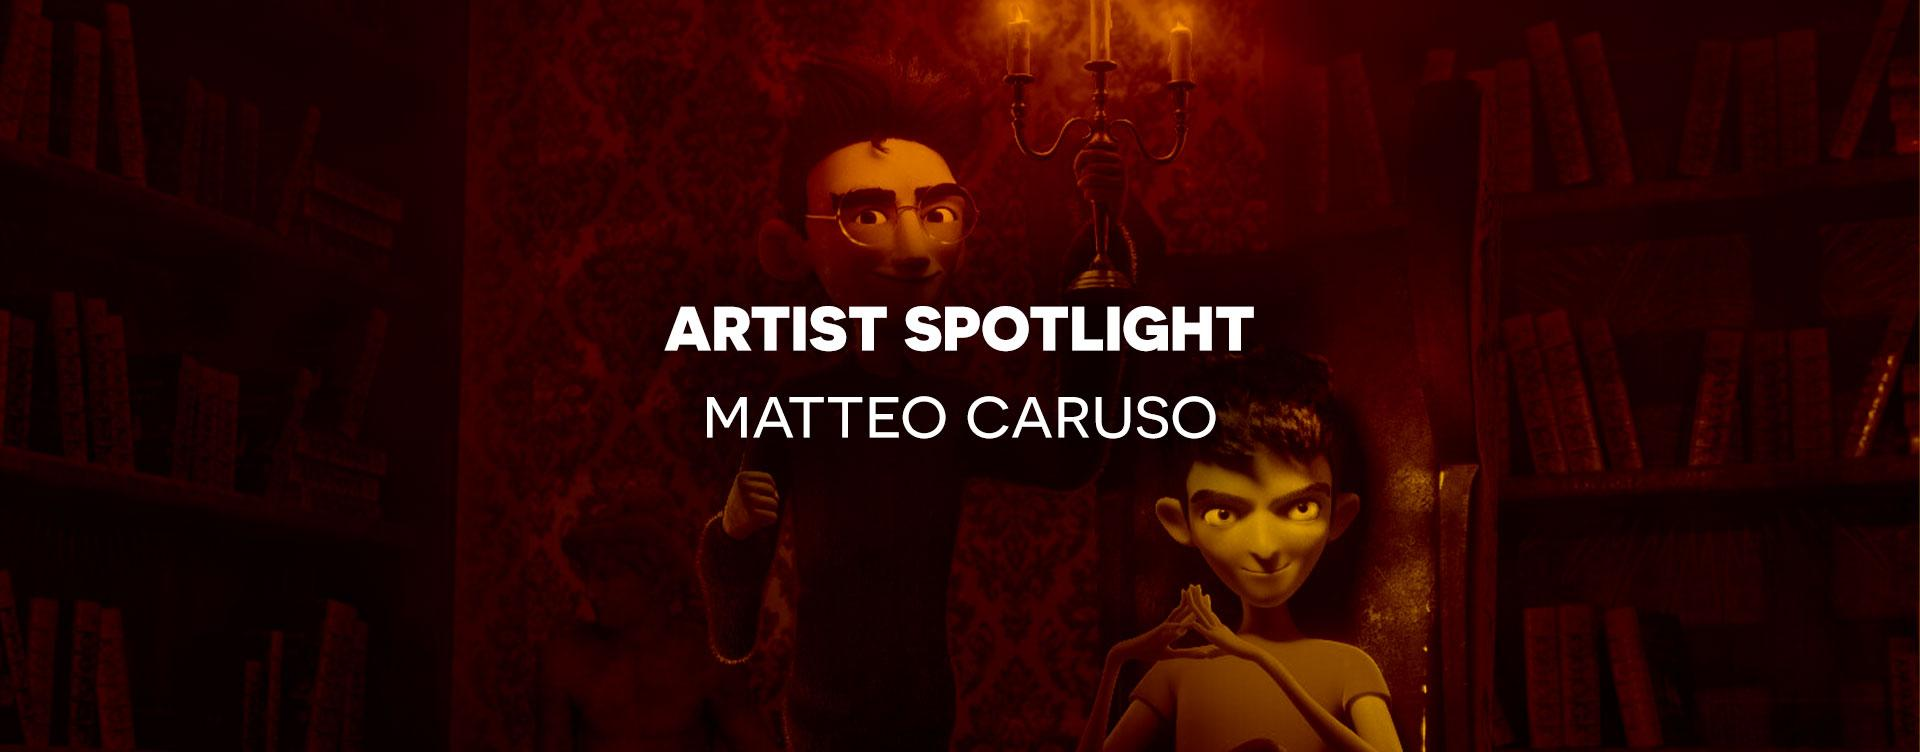 3D CG characters by animation lighter Matteo Caruso